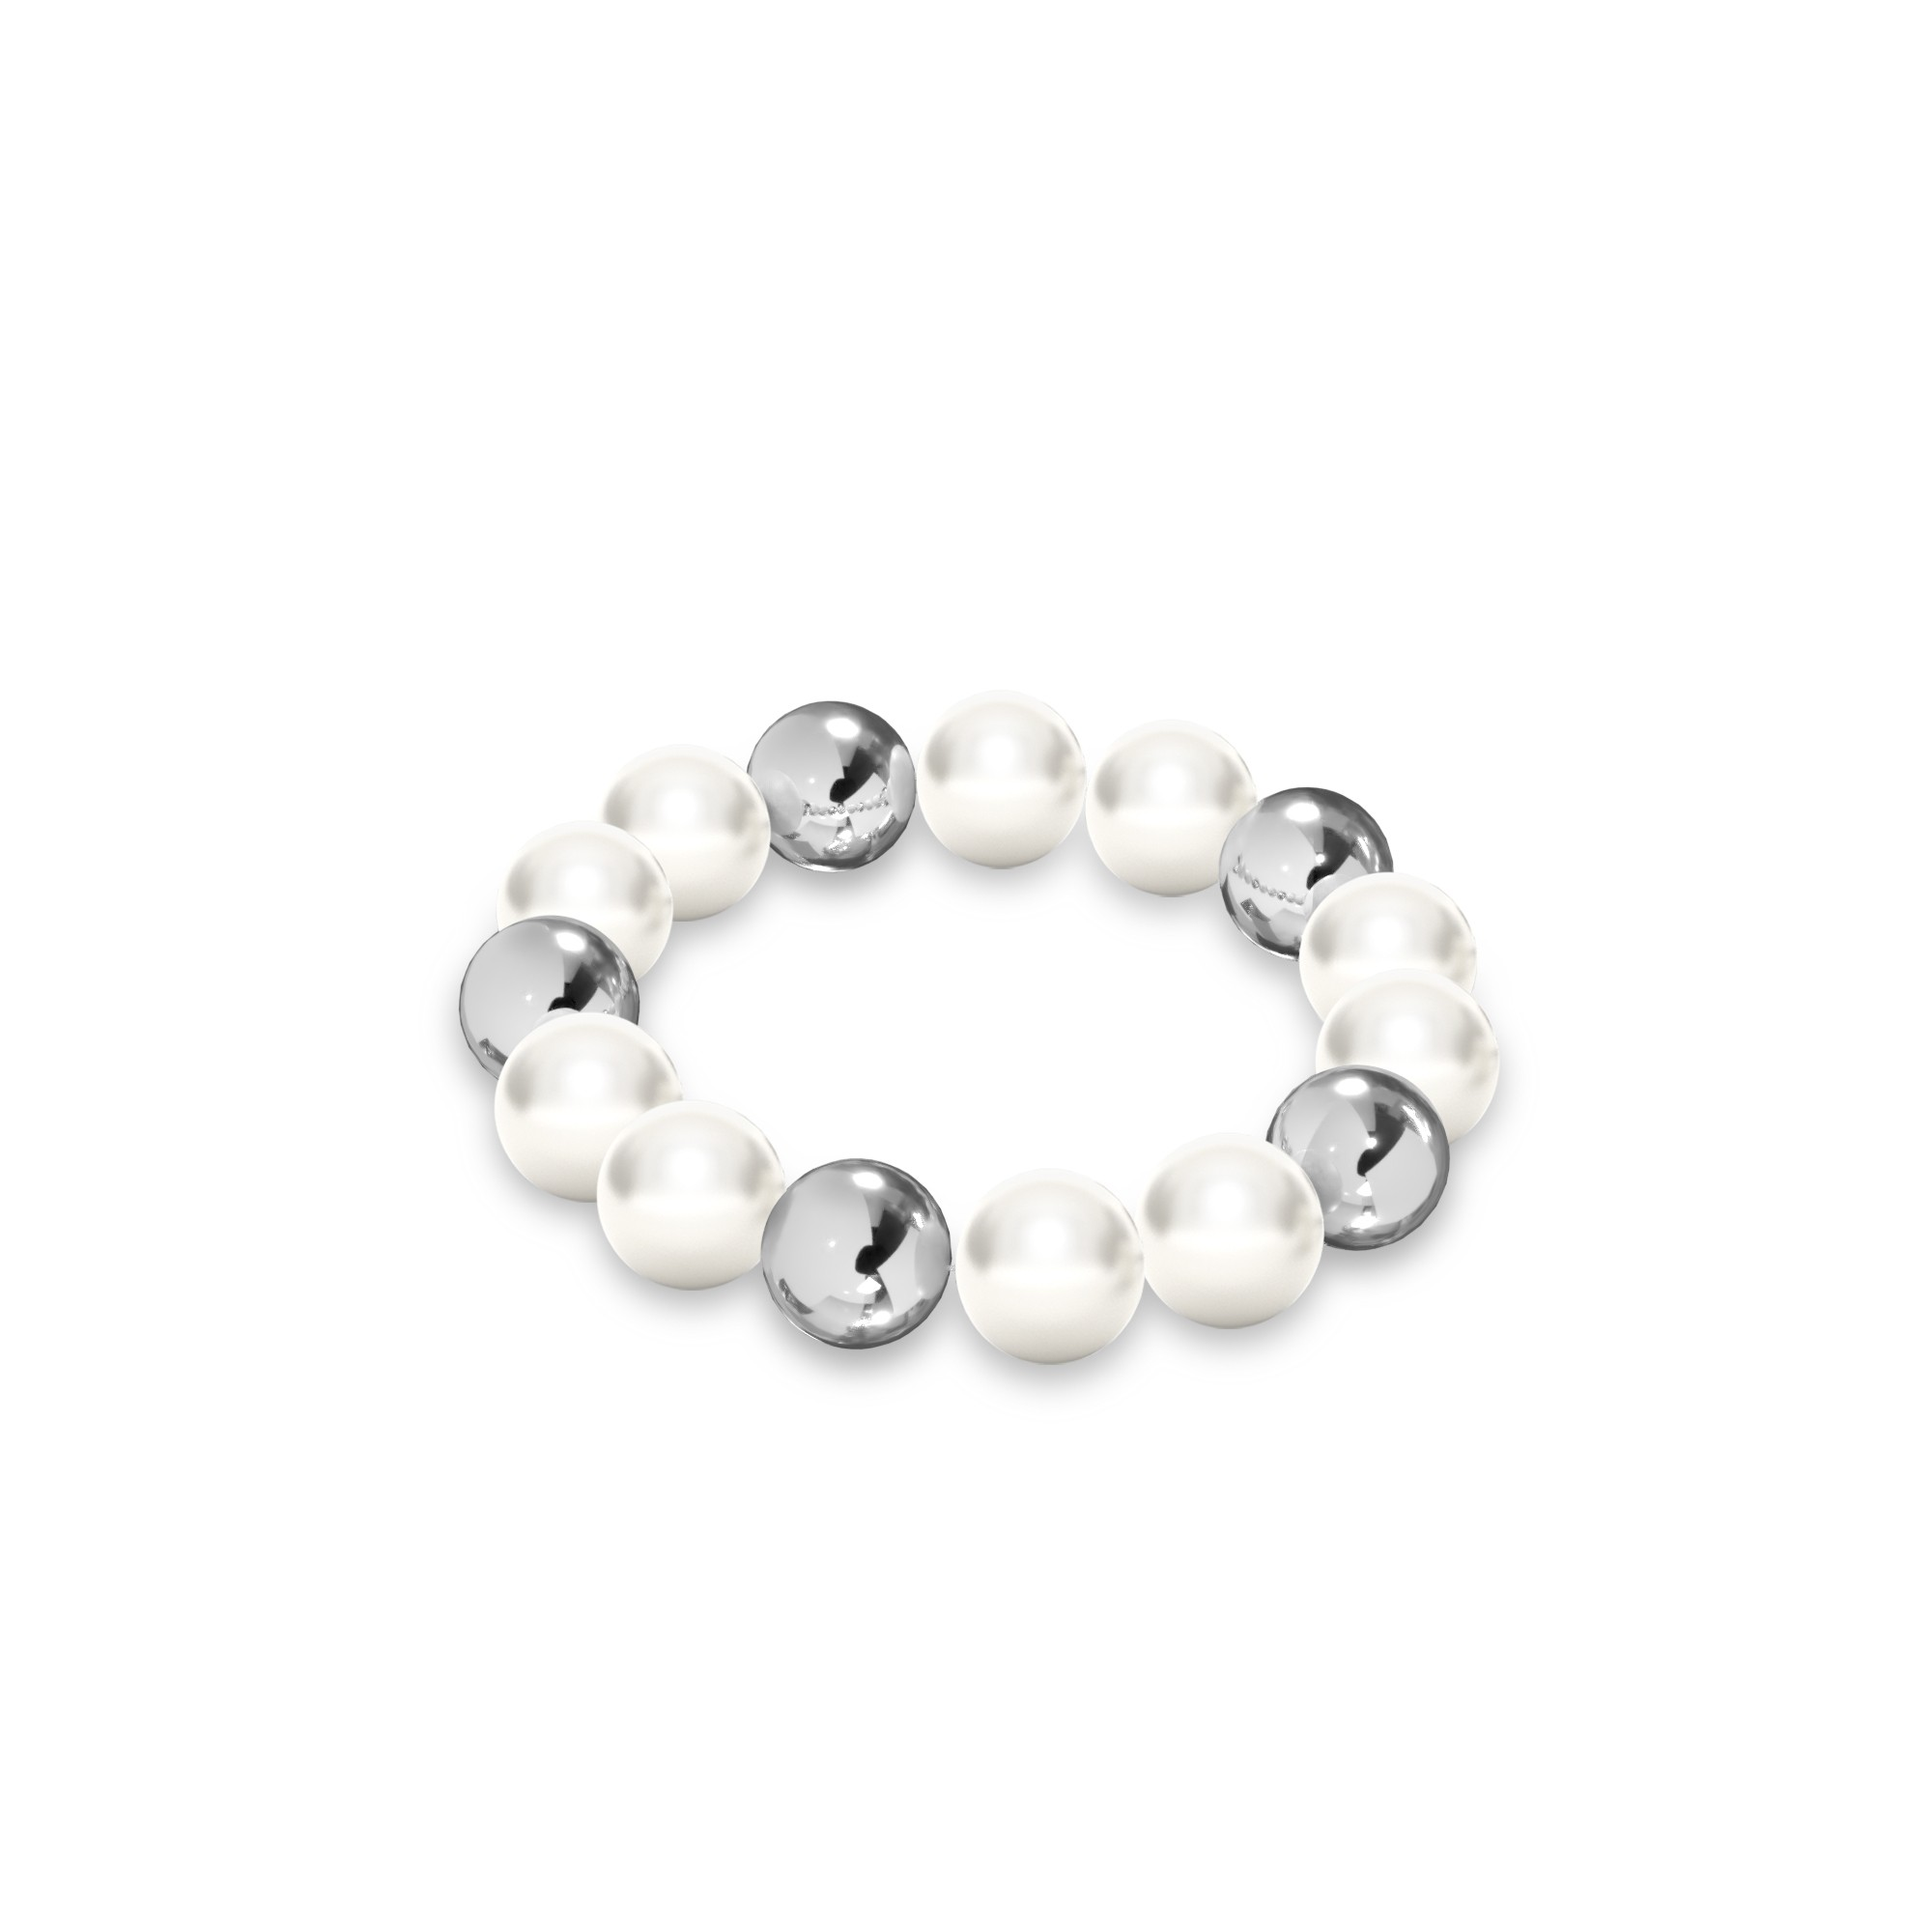 Flexible pearls ring sterling silver 925